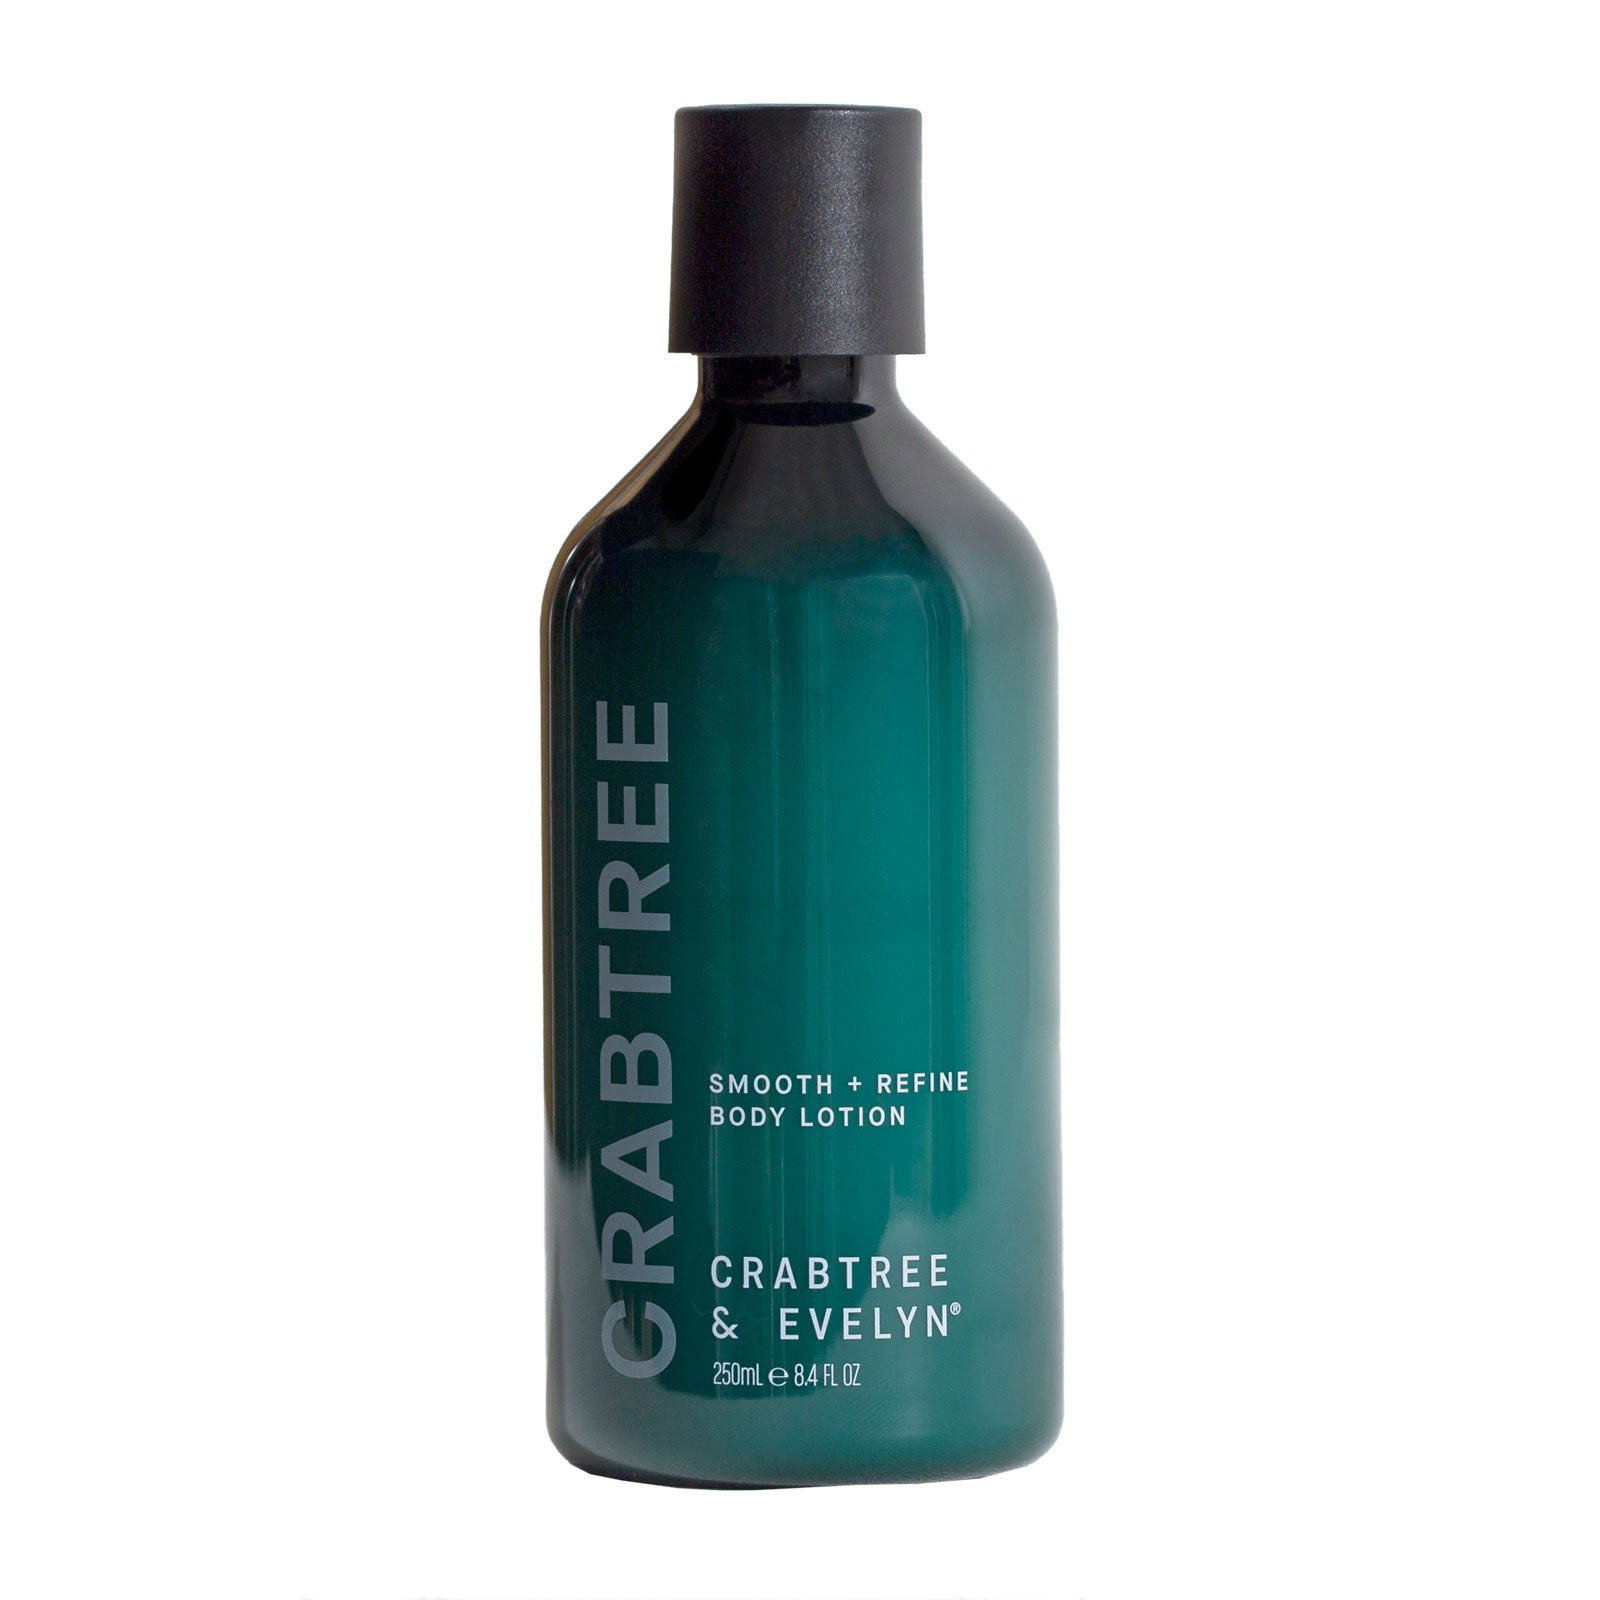 CRABTREE & EVELYN Crabtree Apple Body Lotion 250ml